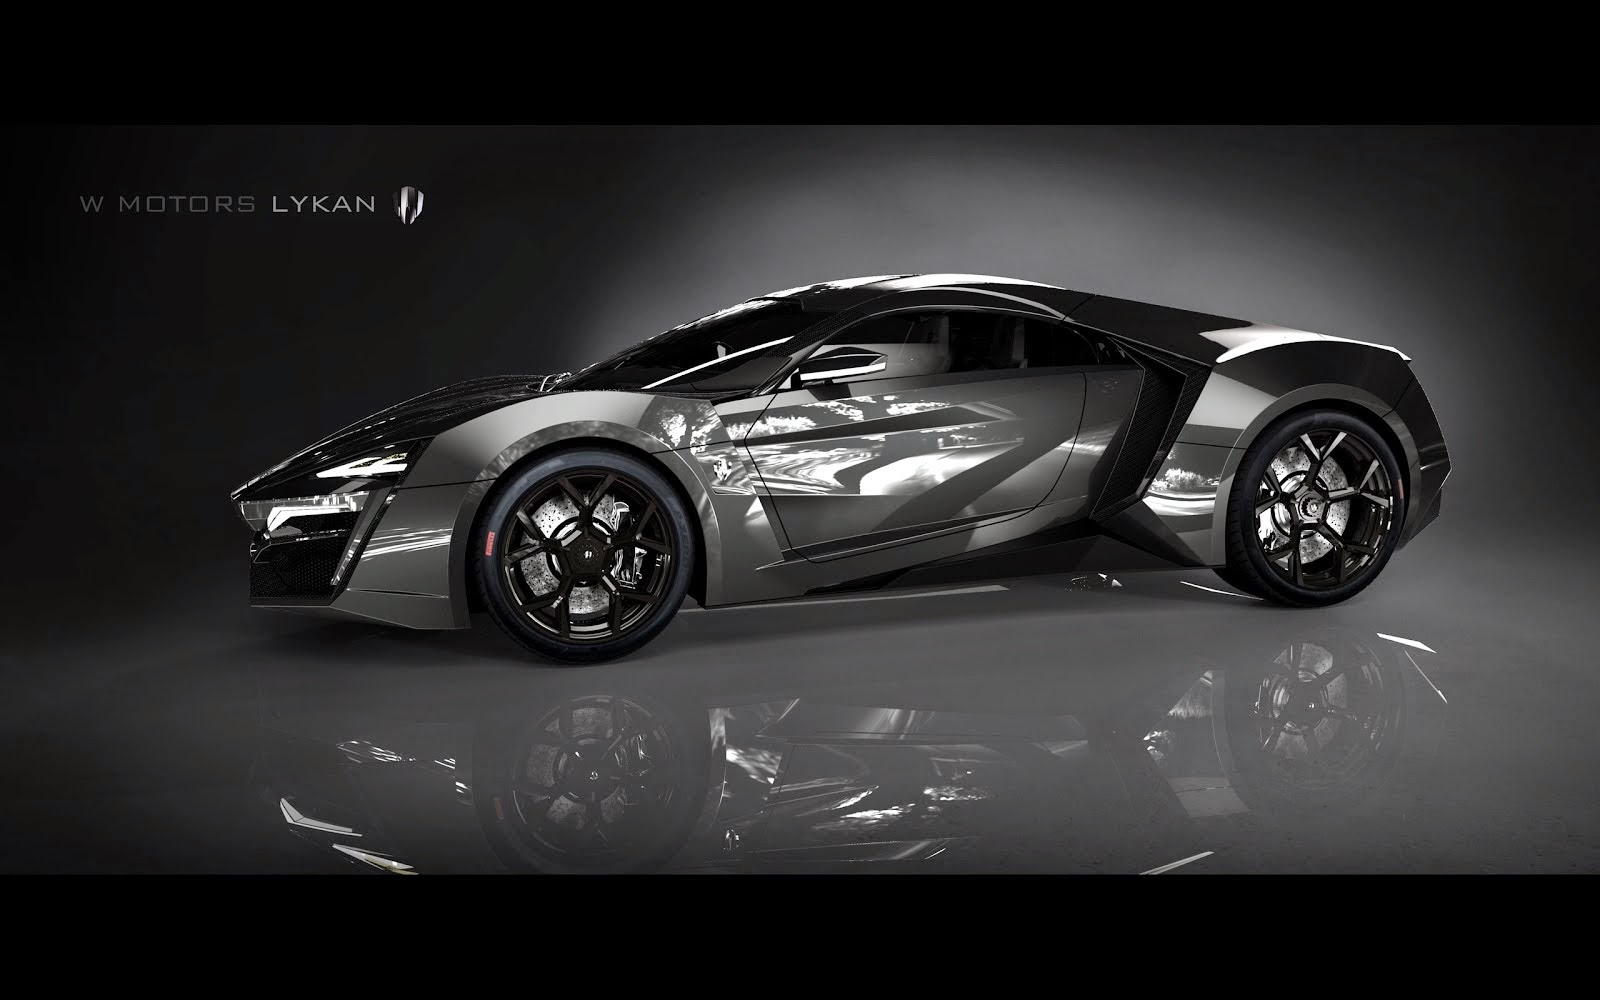 lykan hypersport hd wallpapers w motors car background pictures download free high. Black Bedroom Furniture Sets. Home Design Ideas